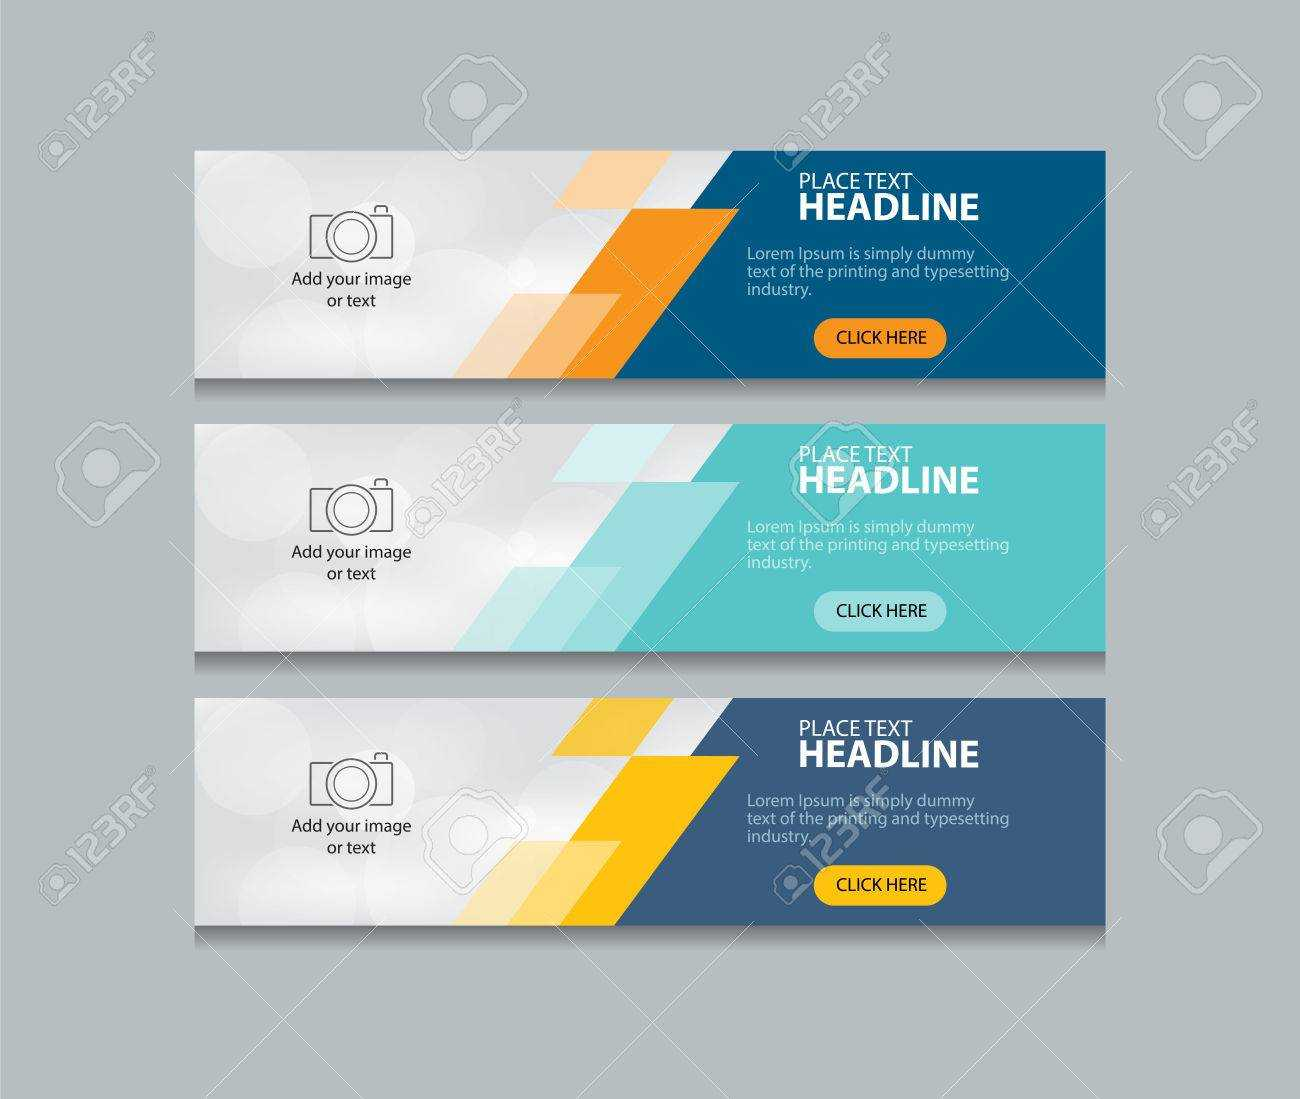 Abstract Web Banner Design Template Background With Website Banner Design Templates